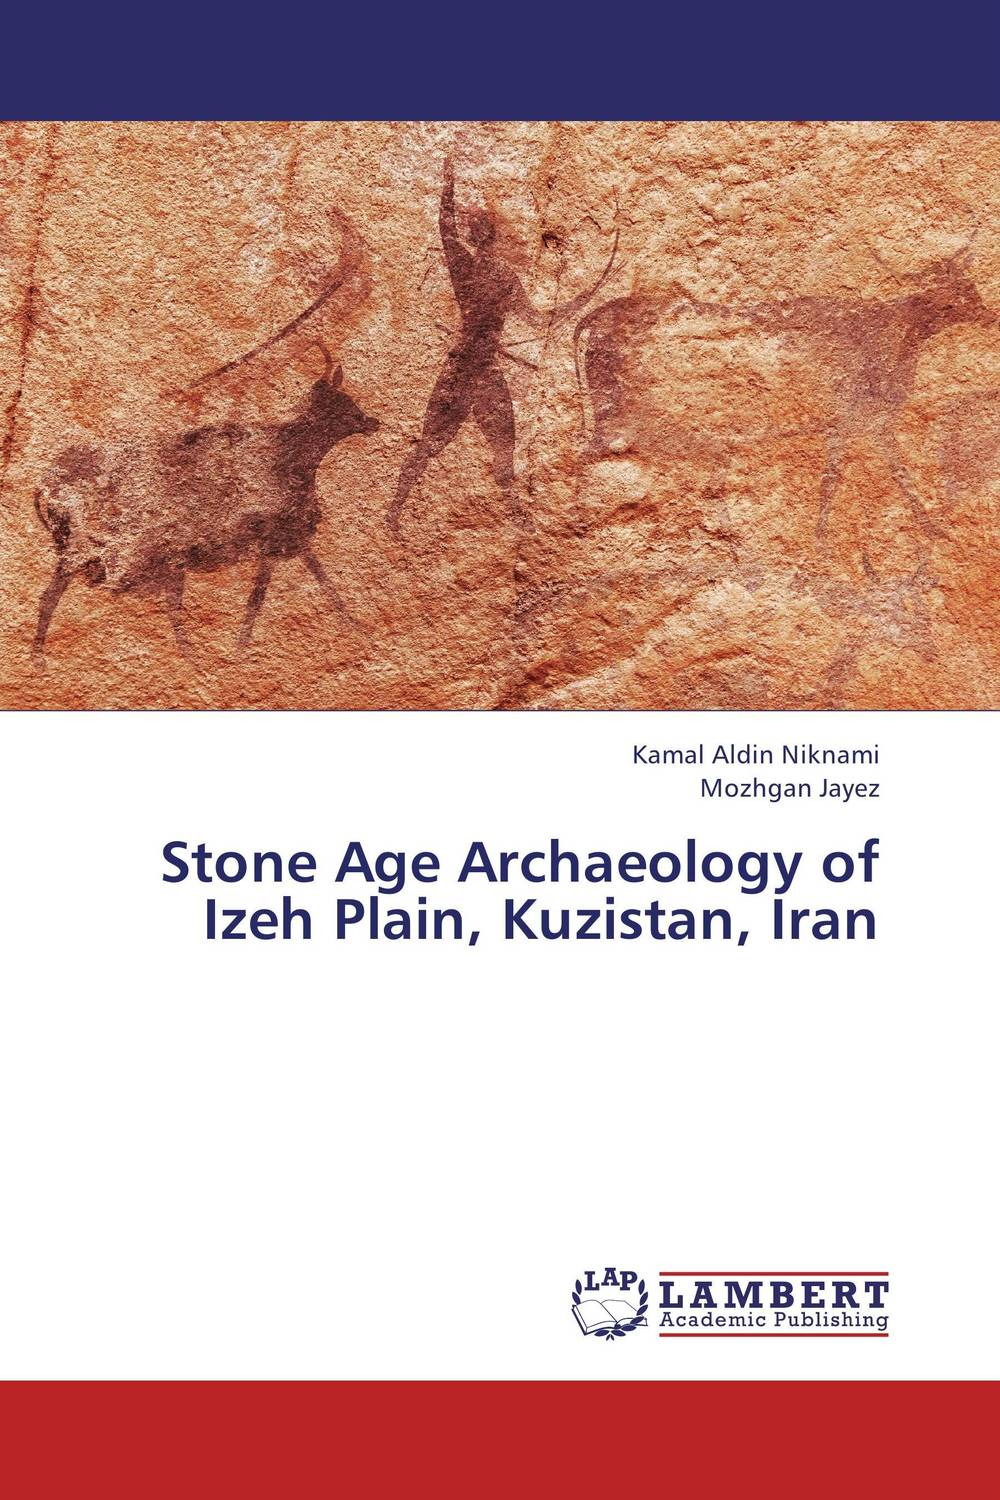 Stone Age Archaeology of Izeh Plain, Kuzistan, Iran oates j the lost landscape a writter s coming of age